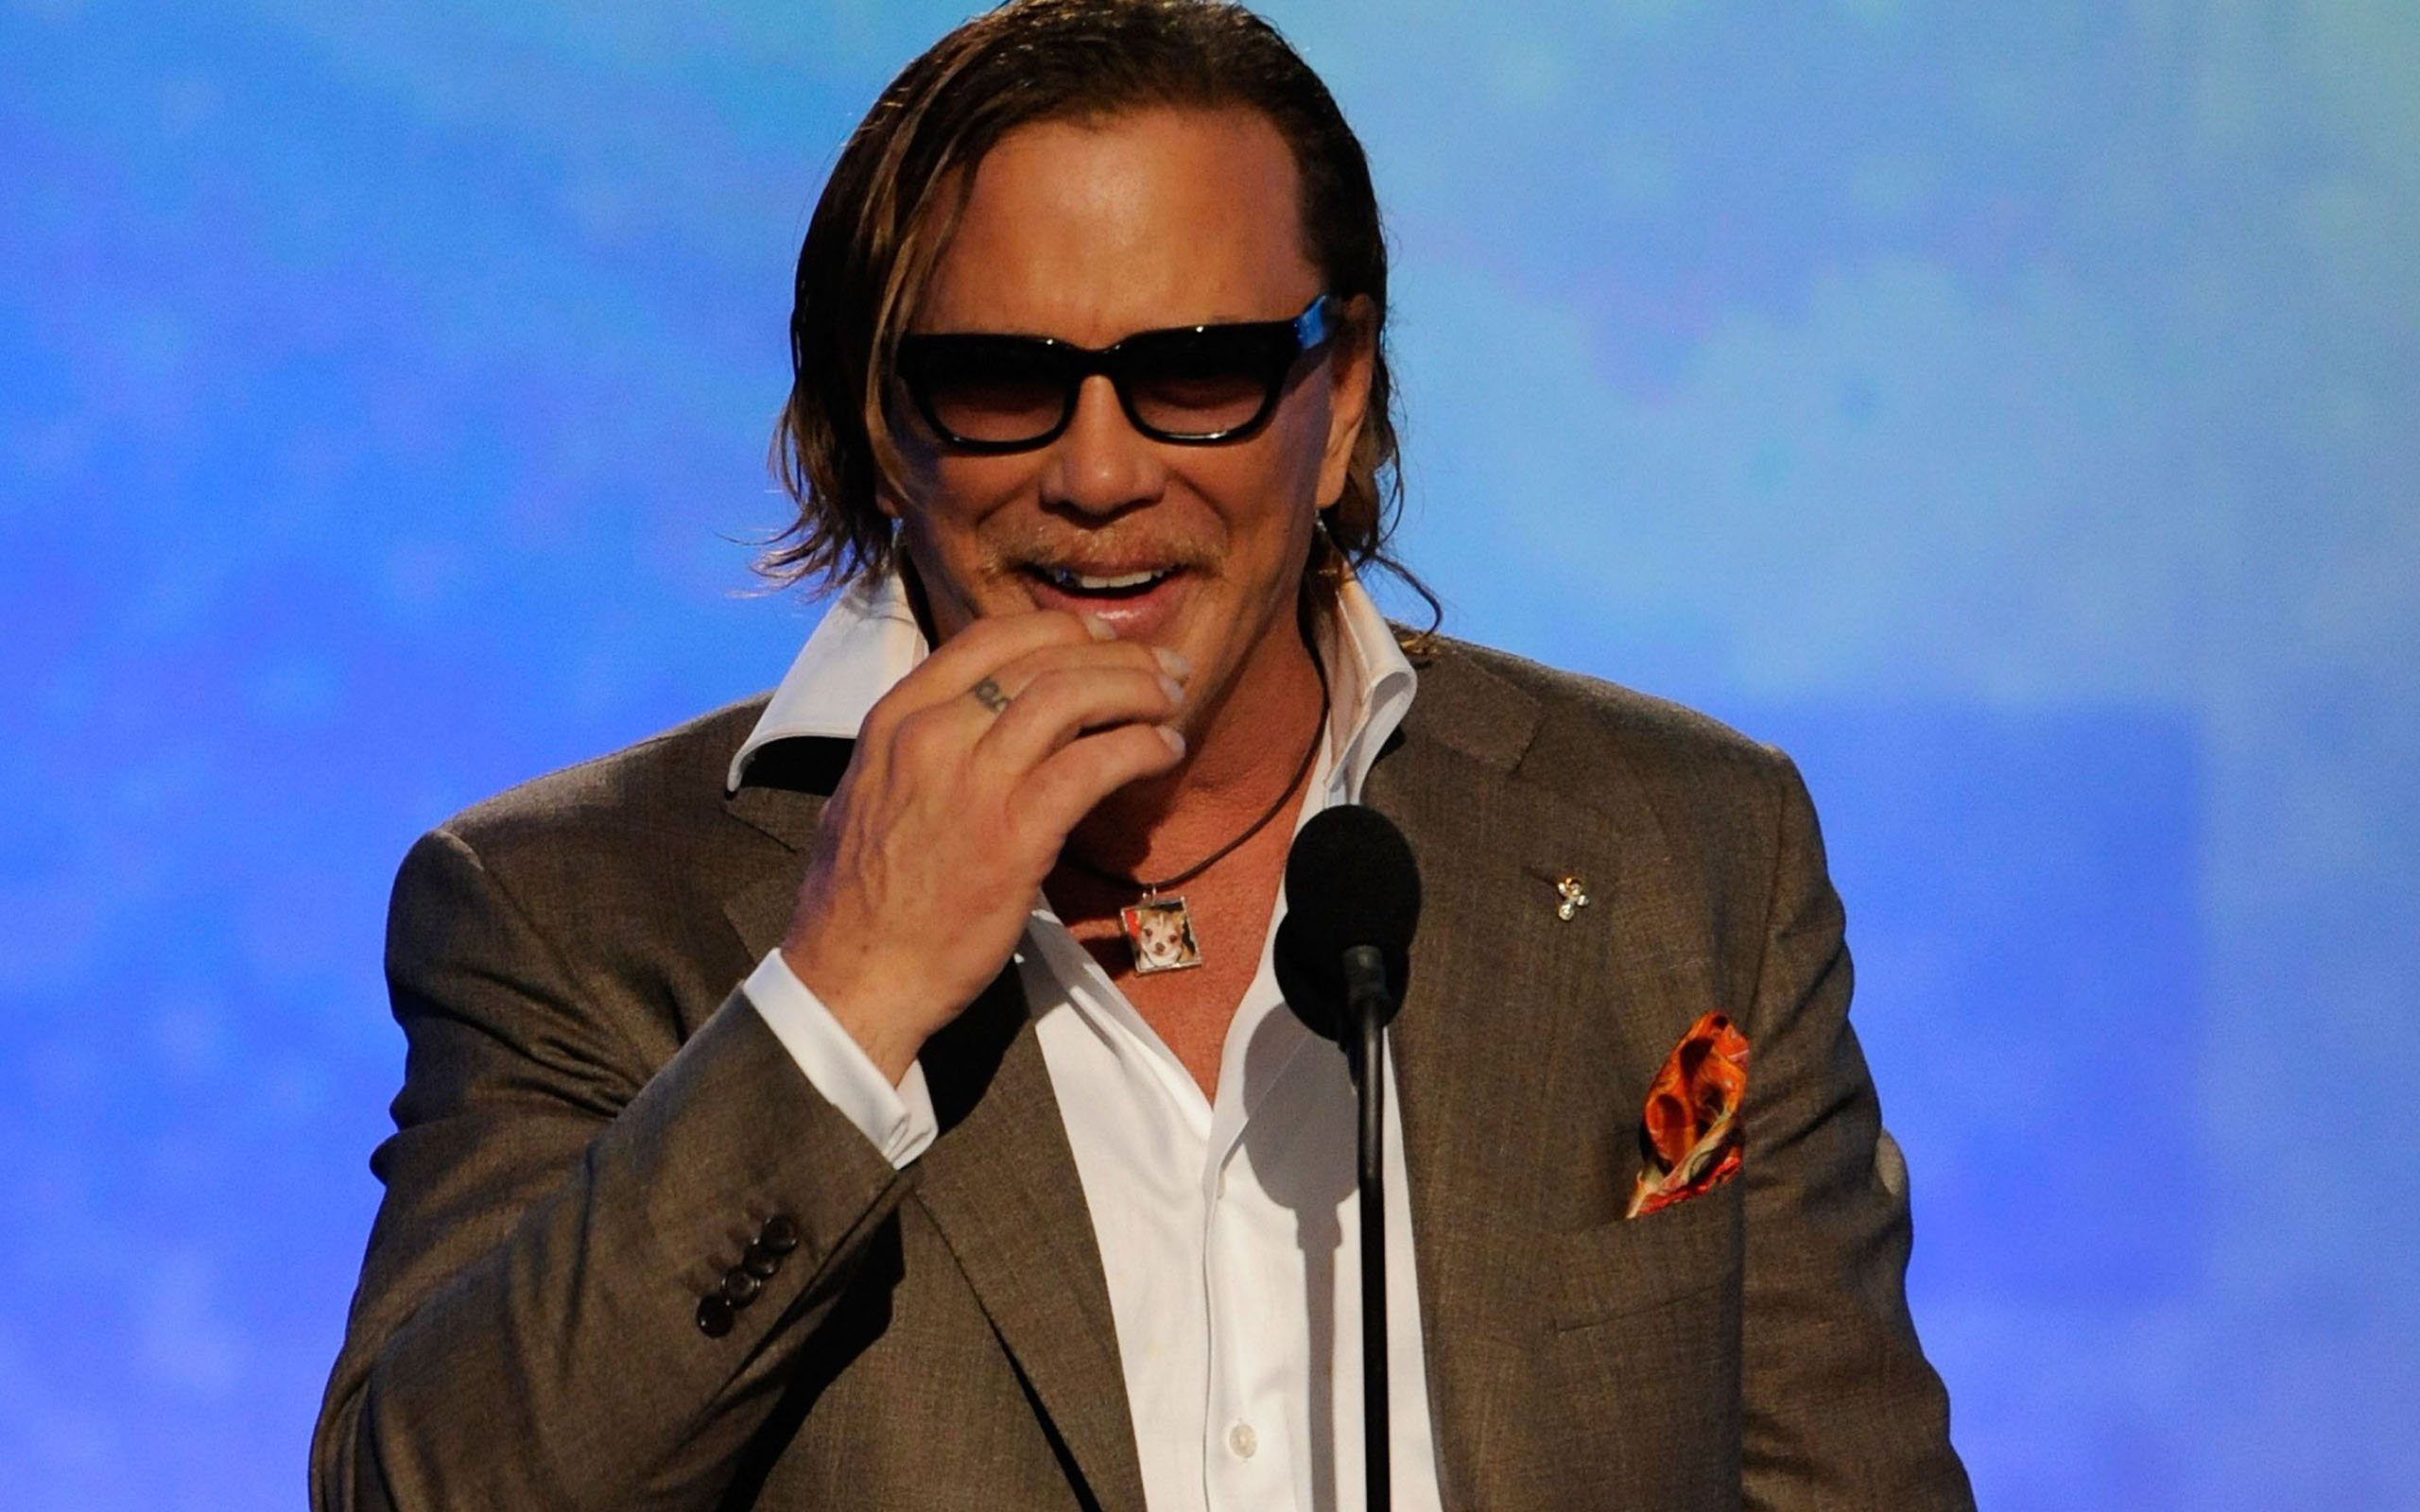 Mickey Rourke Wallpape...